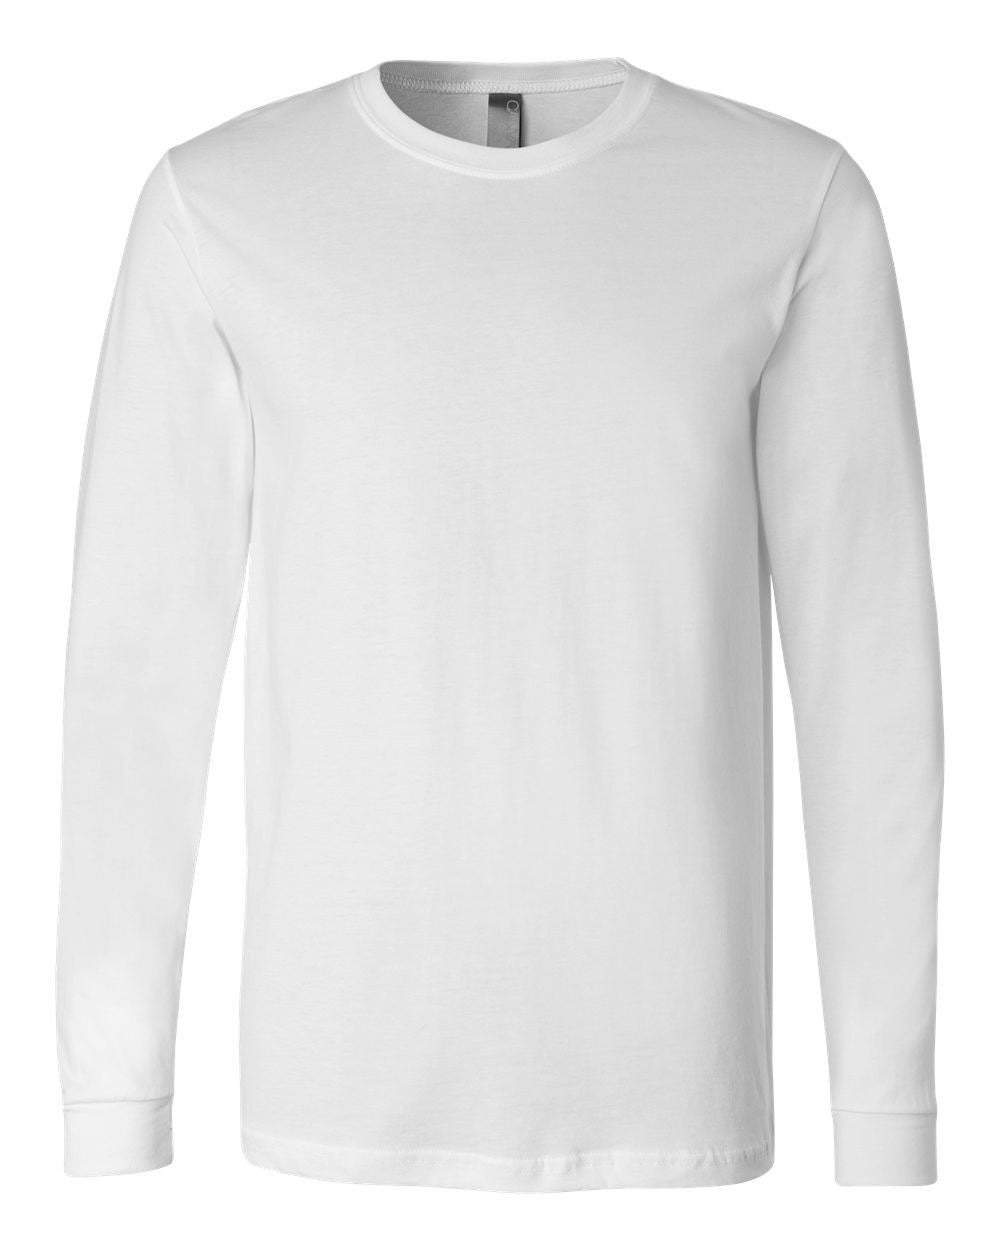 3501 - Long Sleeve Jersey Tee